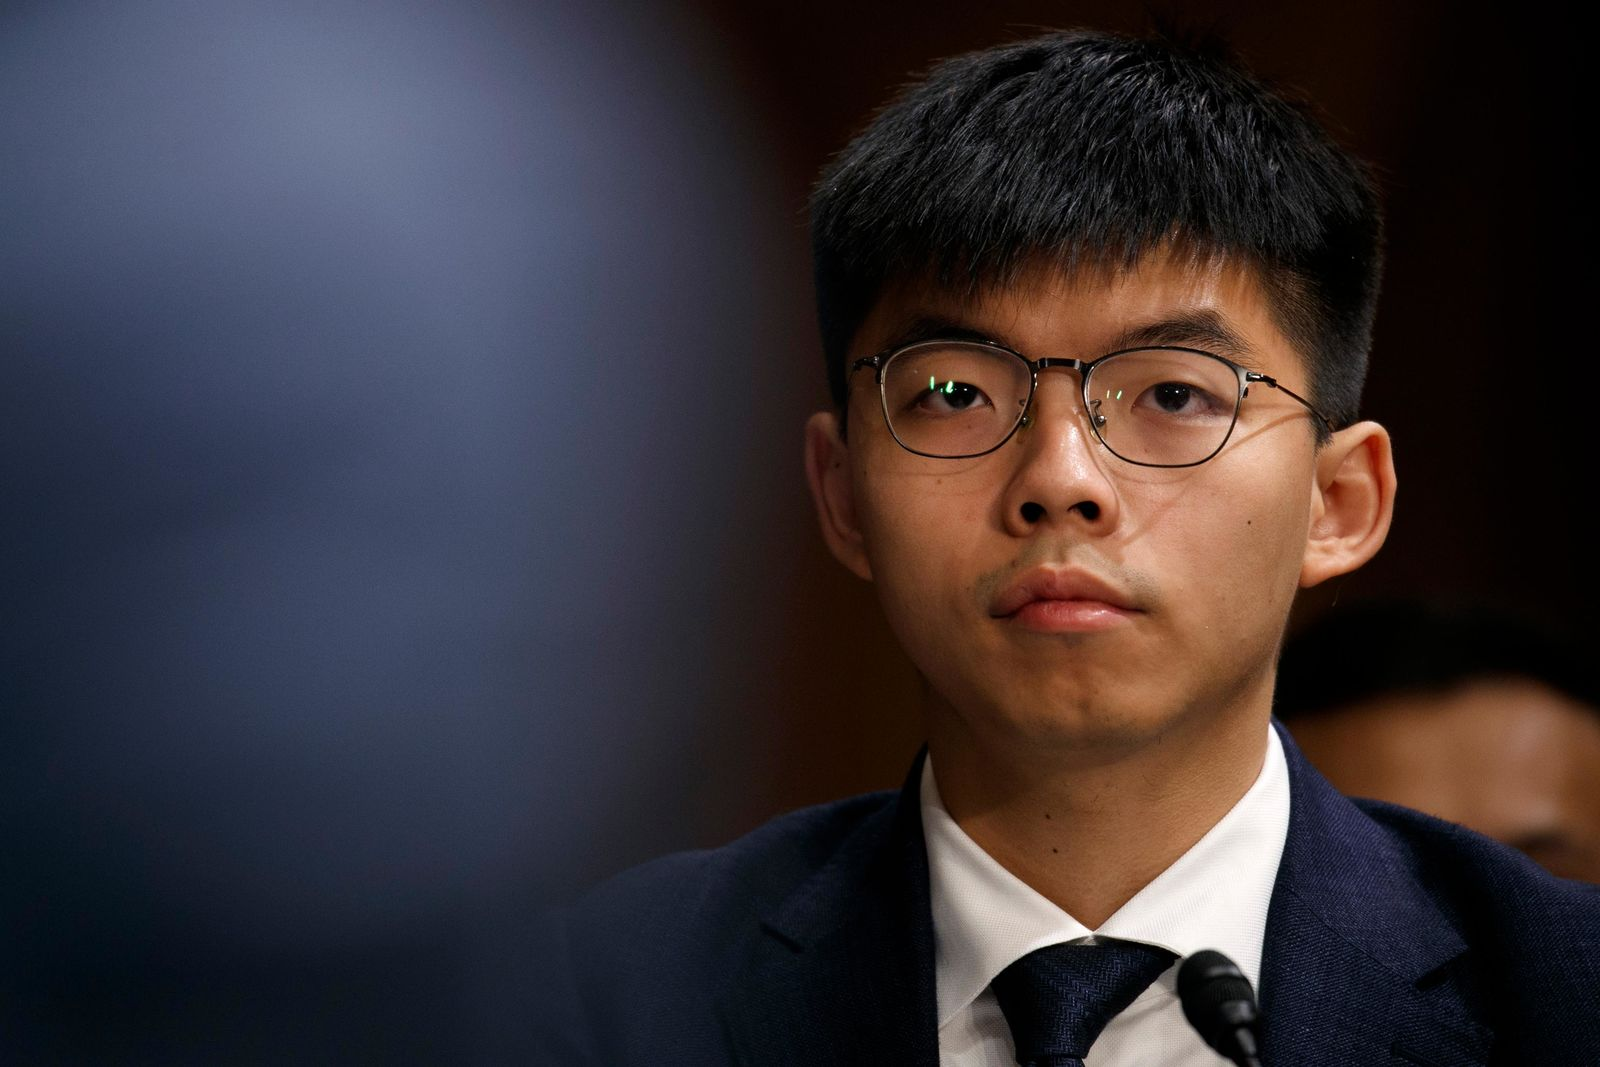 Hong Kong activist Joshua Wong, listens during a congressional hearing on the Hong Kong protests, Tuesday, Sept. 17, 2019, on Capitol Hill in Washington. (AP Photo/Jacquelyn Martin)